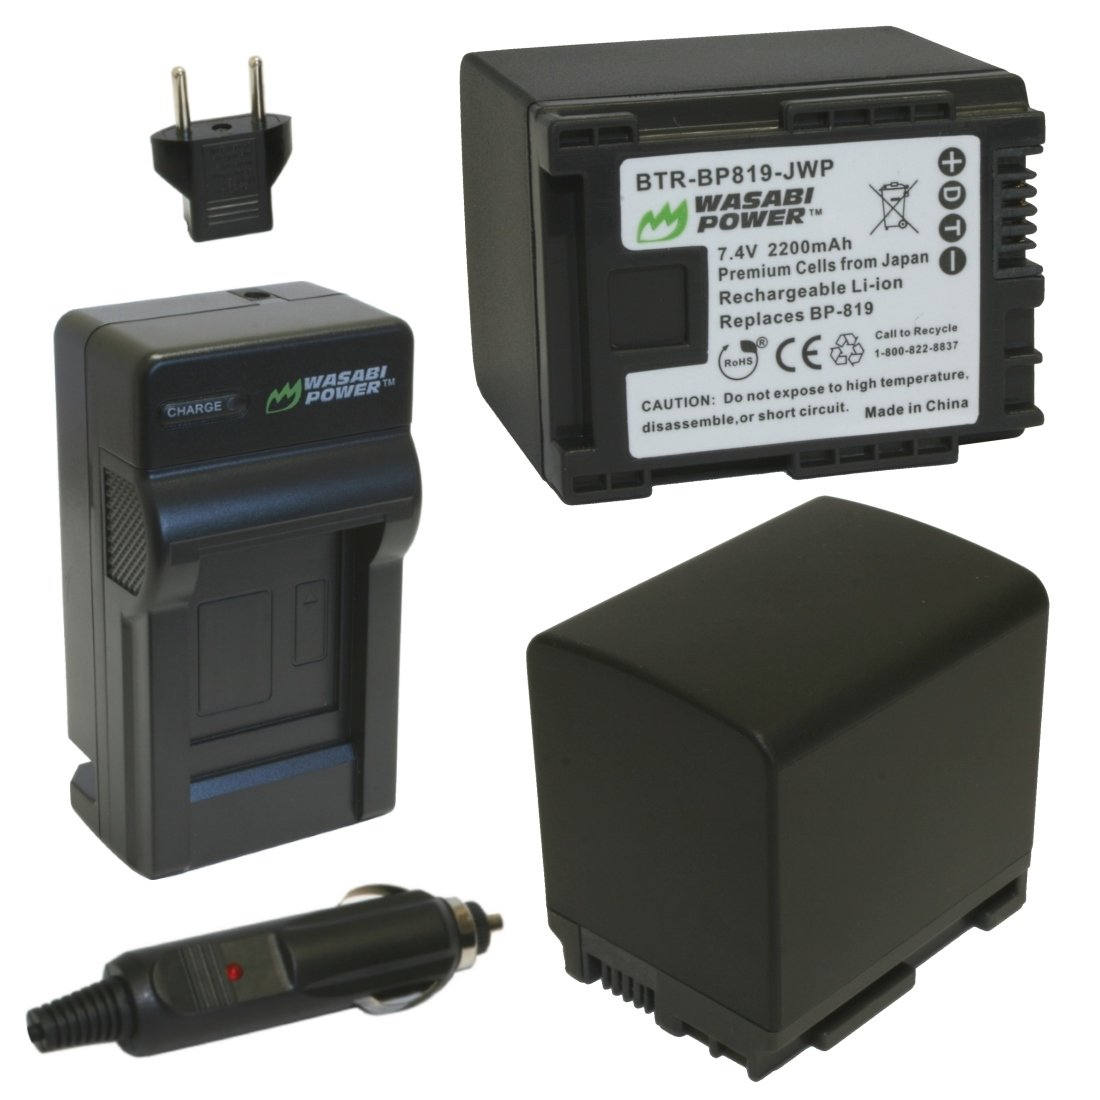 Wasabi Power Battery (2-Pack) and Charger for Canon BP-819 and Canon VIXIA HF10, HF11, HF20, HF21, HF100, HF200, HF G10, HF M30, HF M31, HF M32, HF M40, HF M41, HF M300, HF M400, HF S10, HF S11, HF S20, HF S21, HF S30, HF S100, HF S200, HG20, HG21, HG30, X